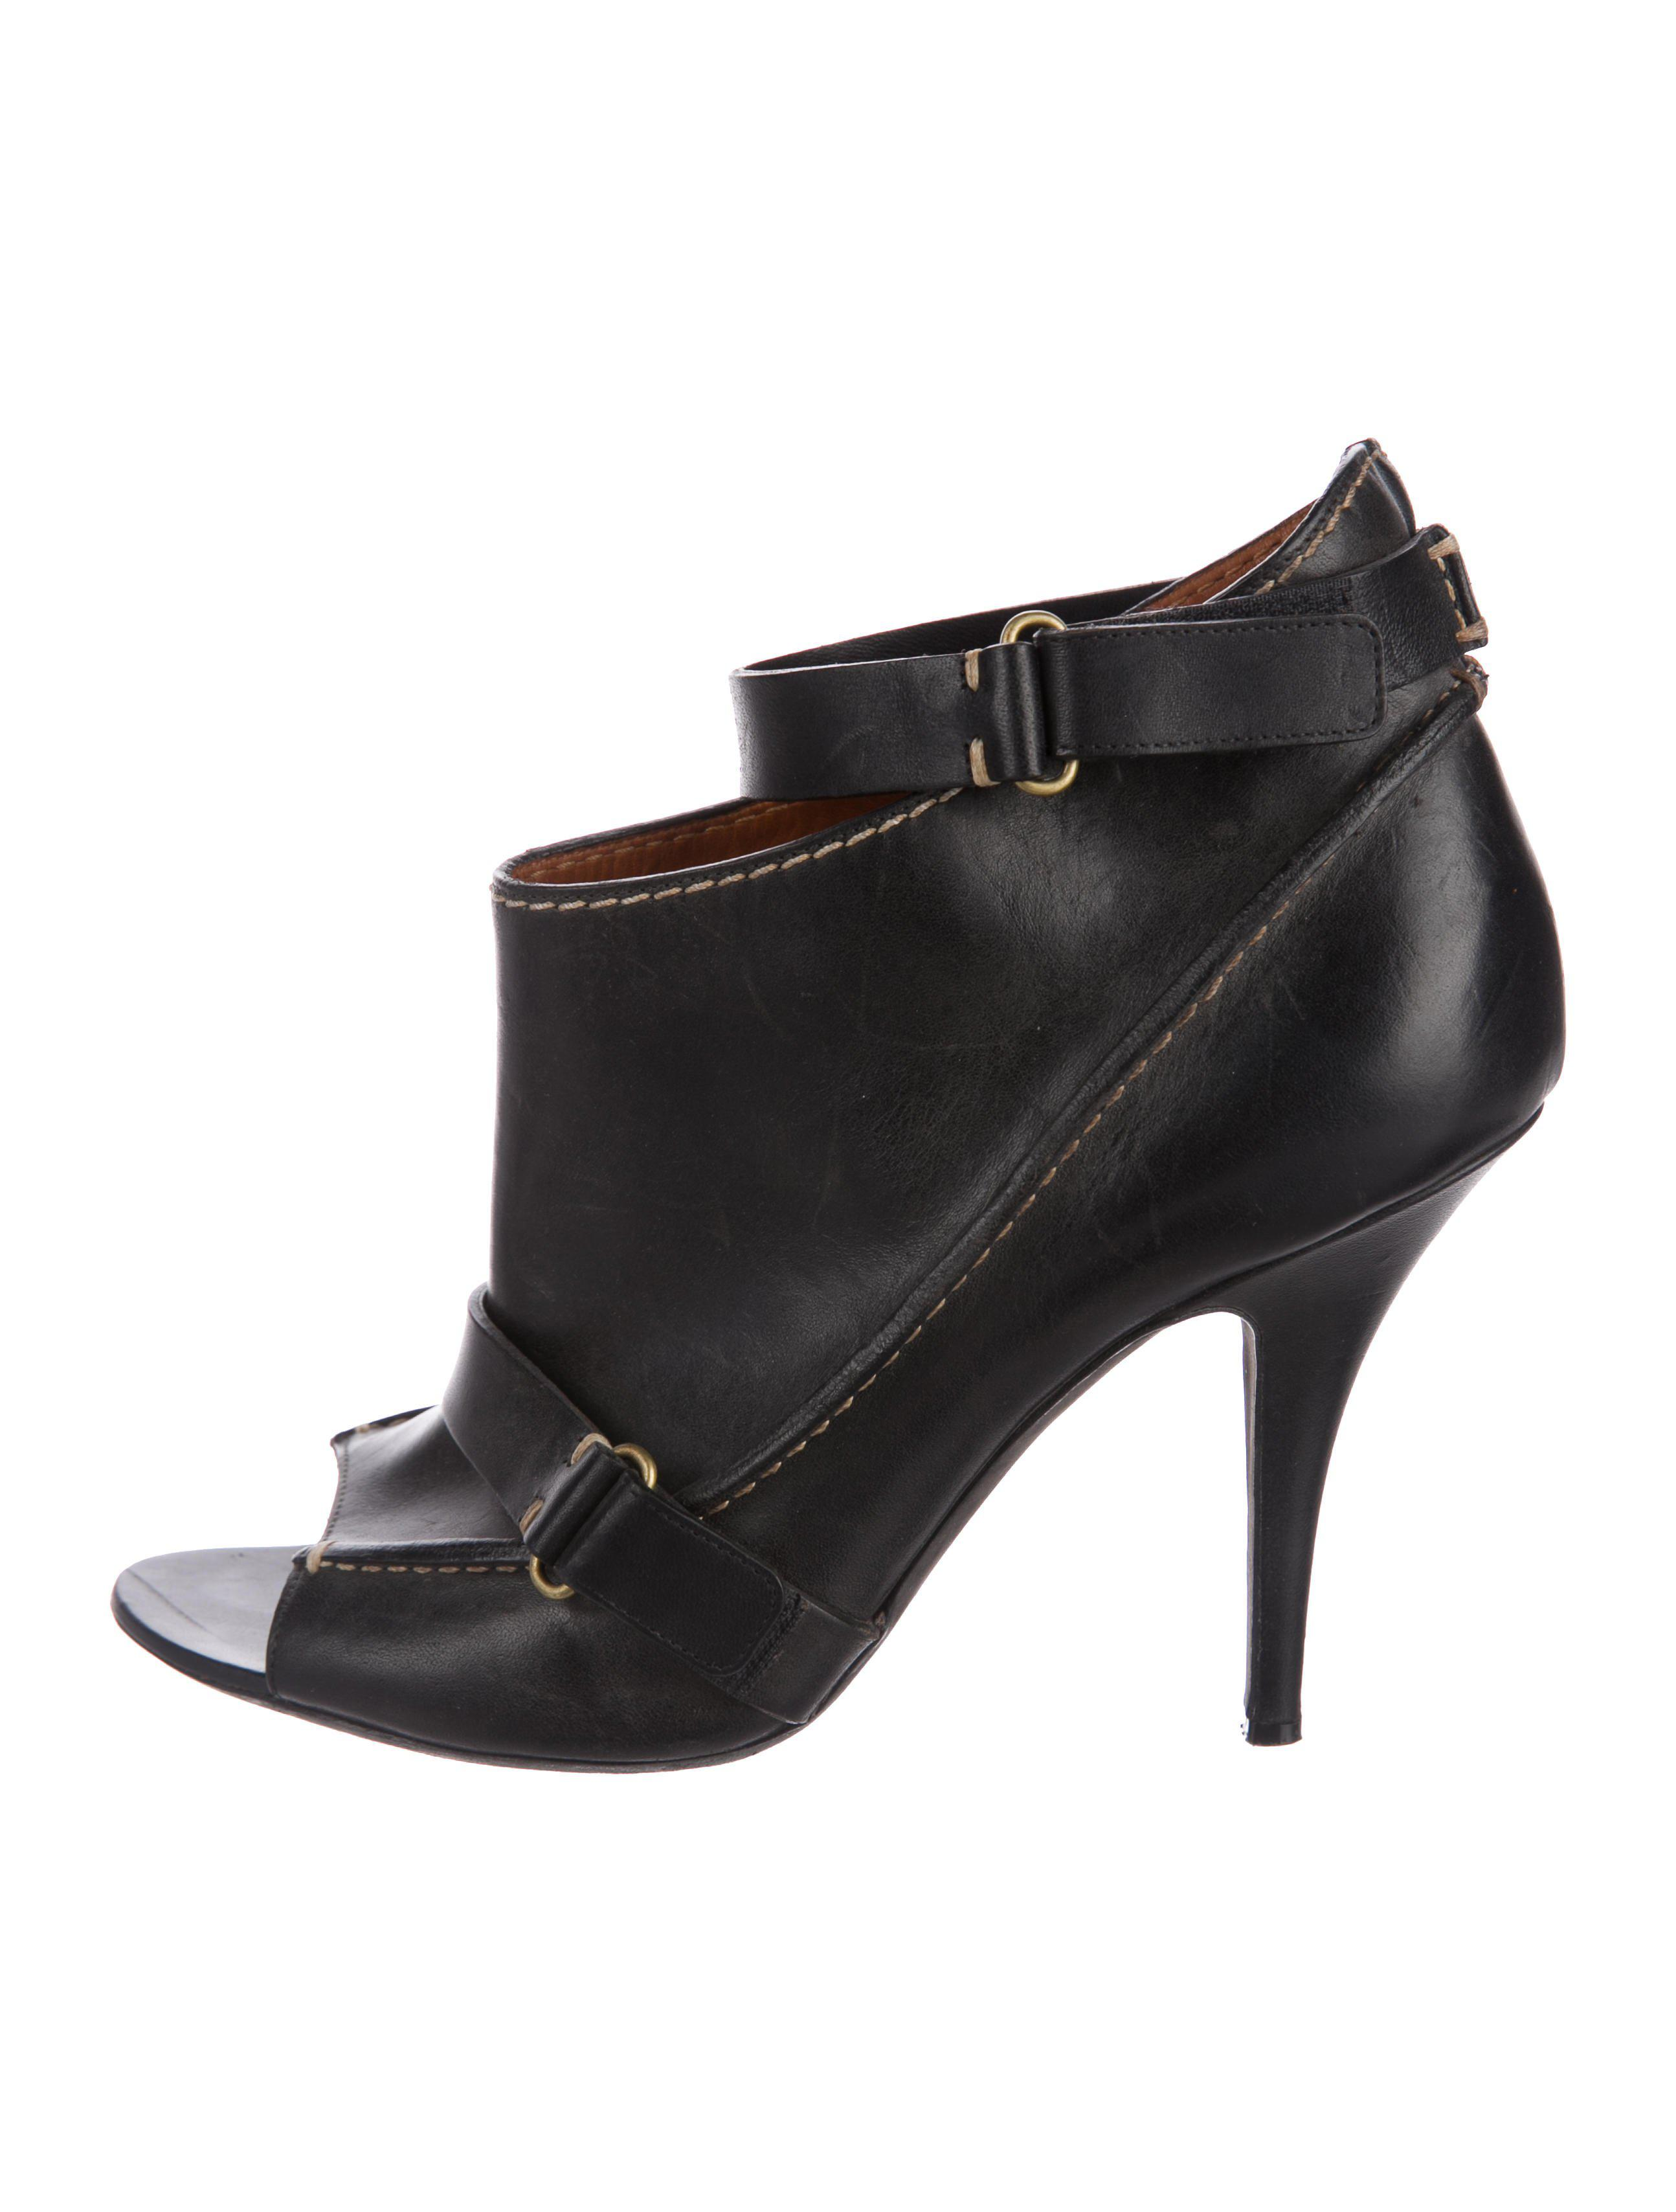 Givenchy PVC Peep-Toe Booties really sale online clearance ebay jHKIv109Sg